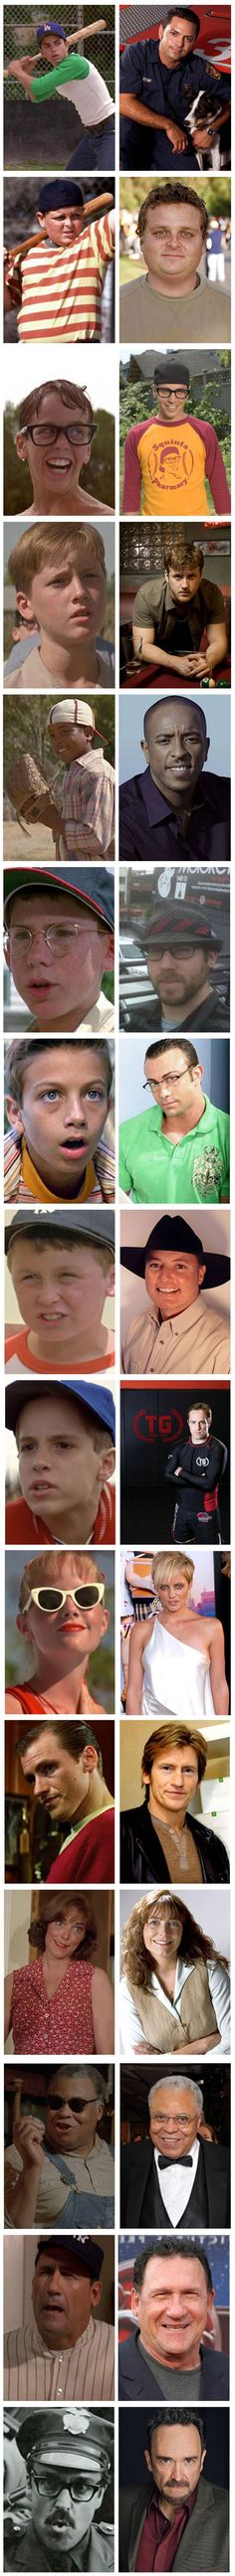 The Sandlot - Then (1993) and Now (2013)